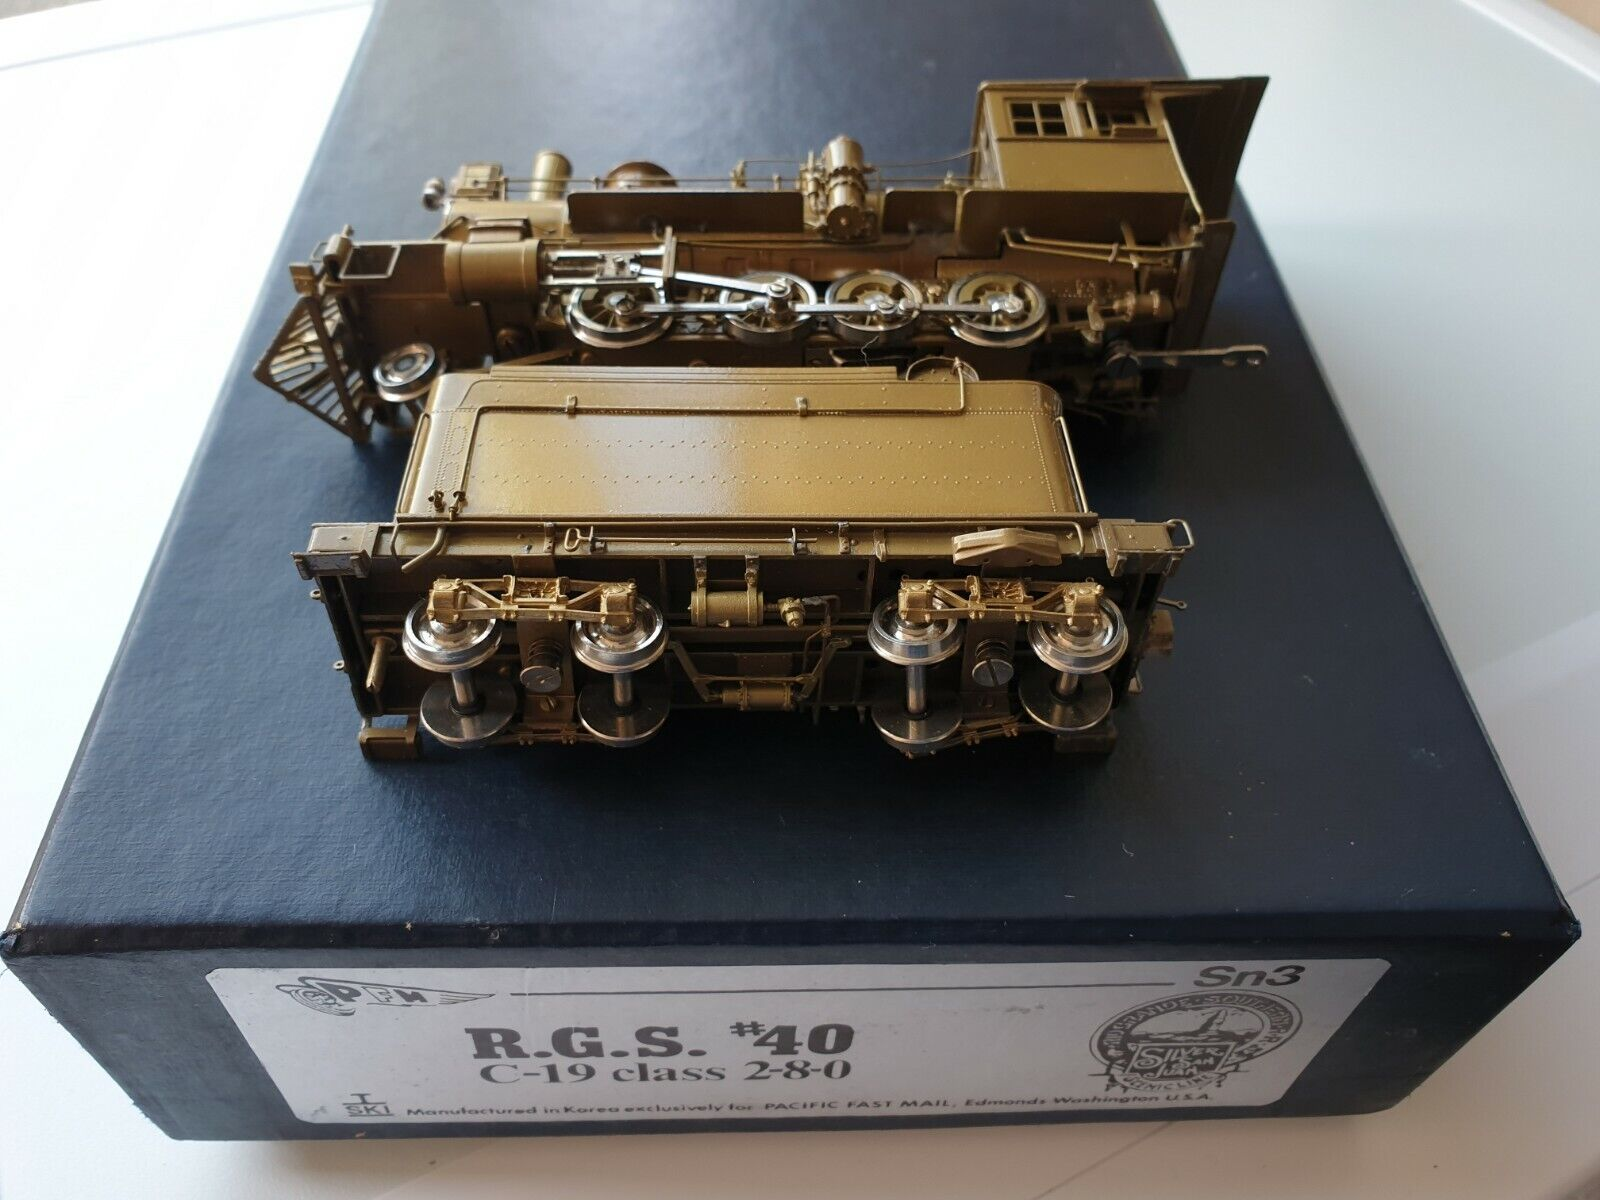 SKI FOR PFM SN3 RGS 40 C-19 CLASS 2-8-0 BRASS LOCOMOTIVE